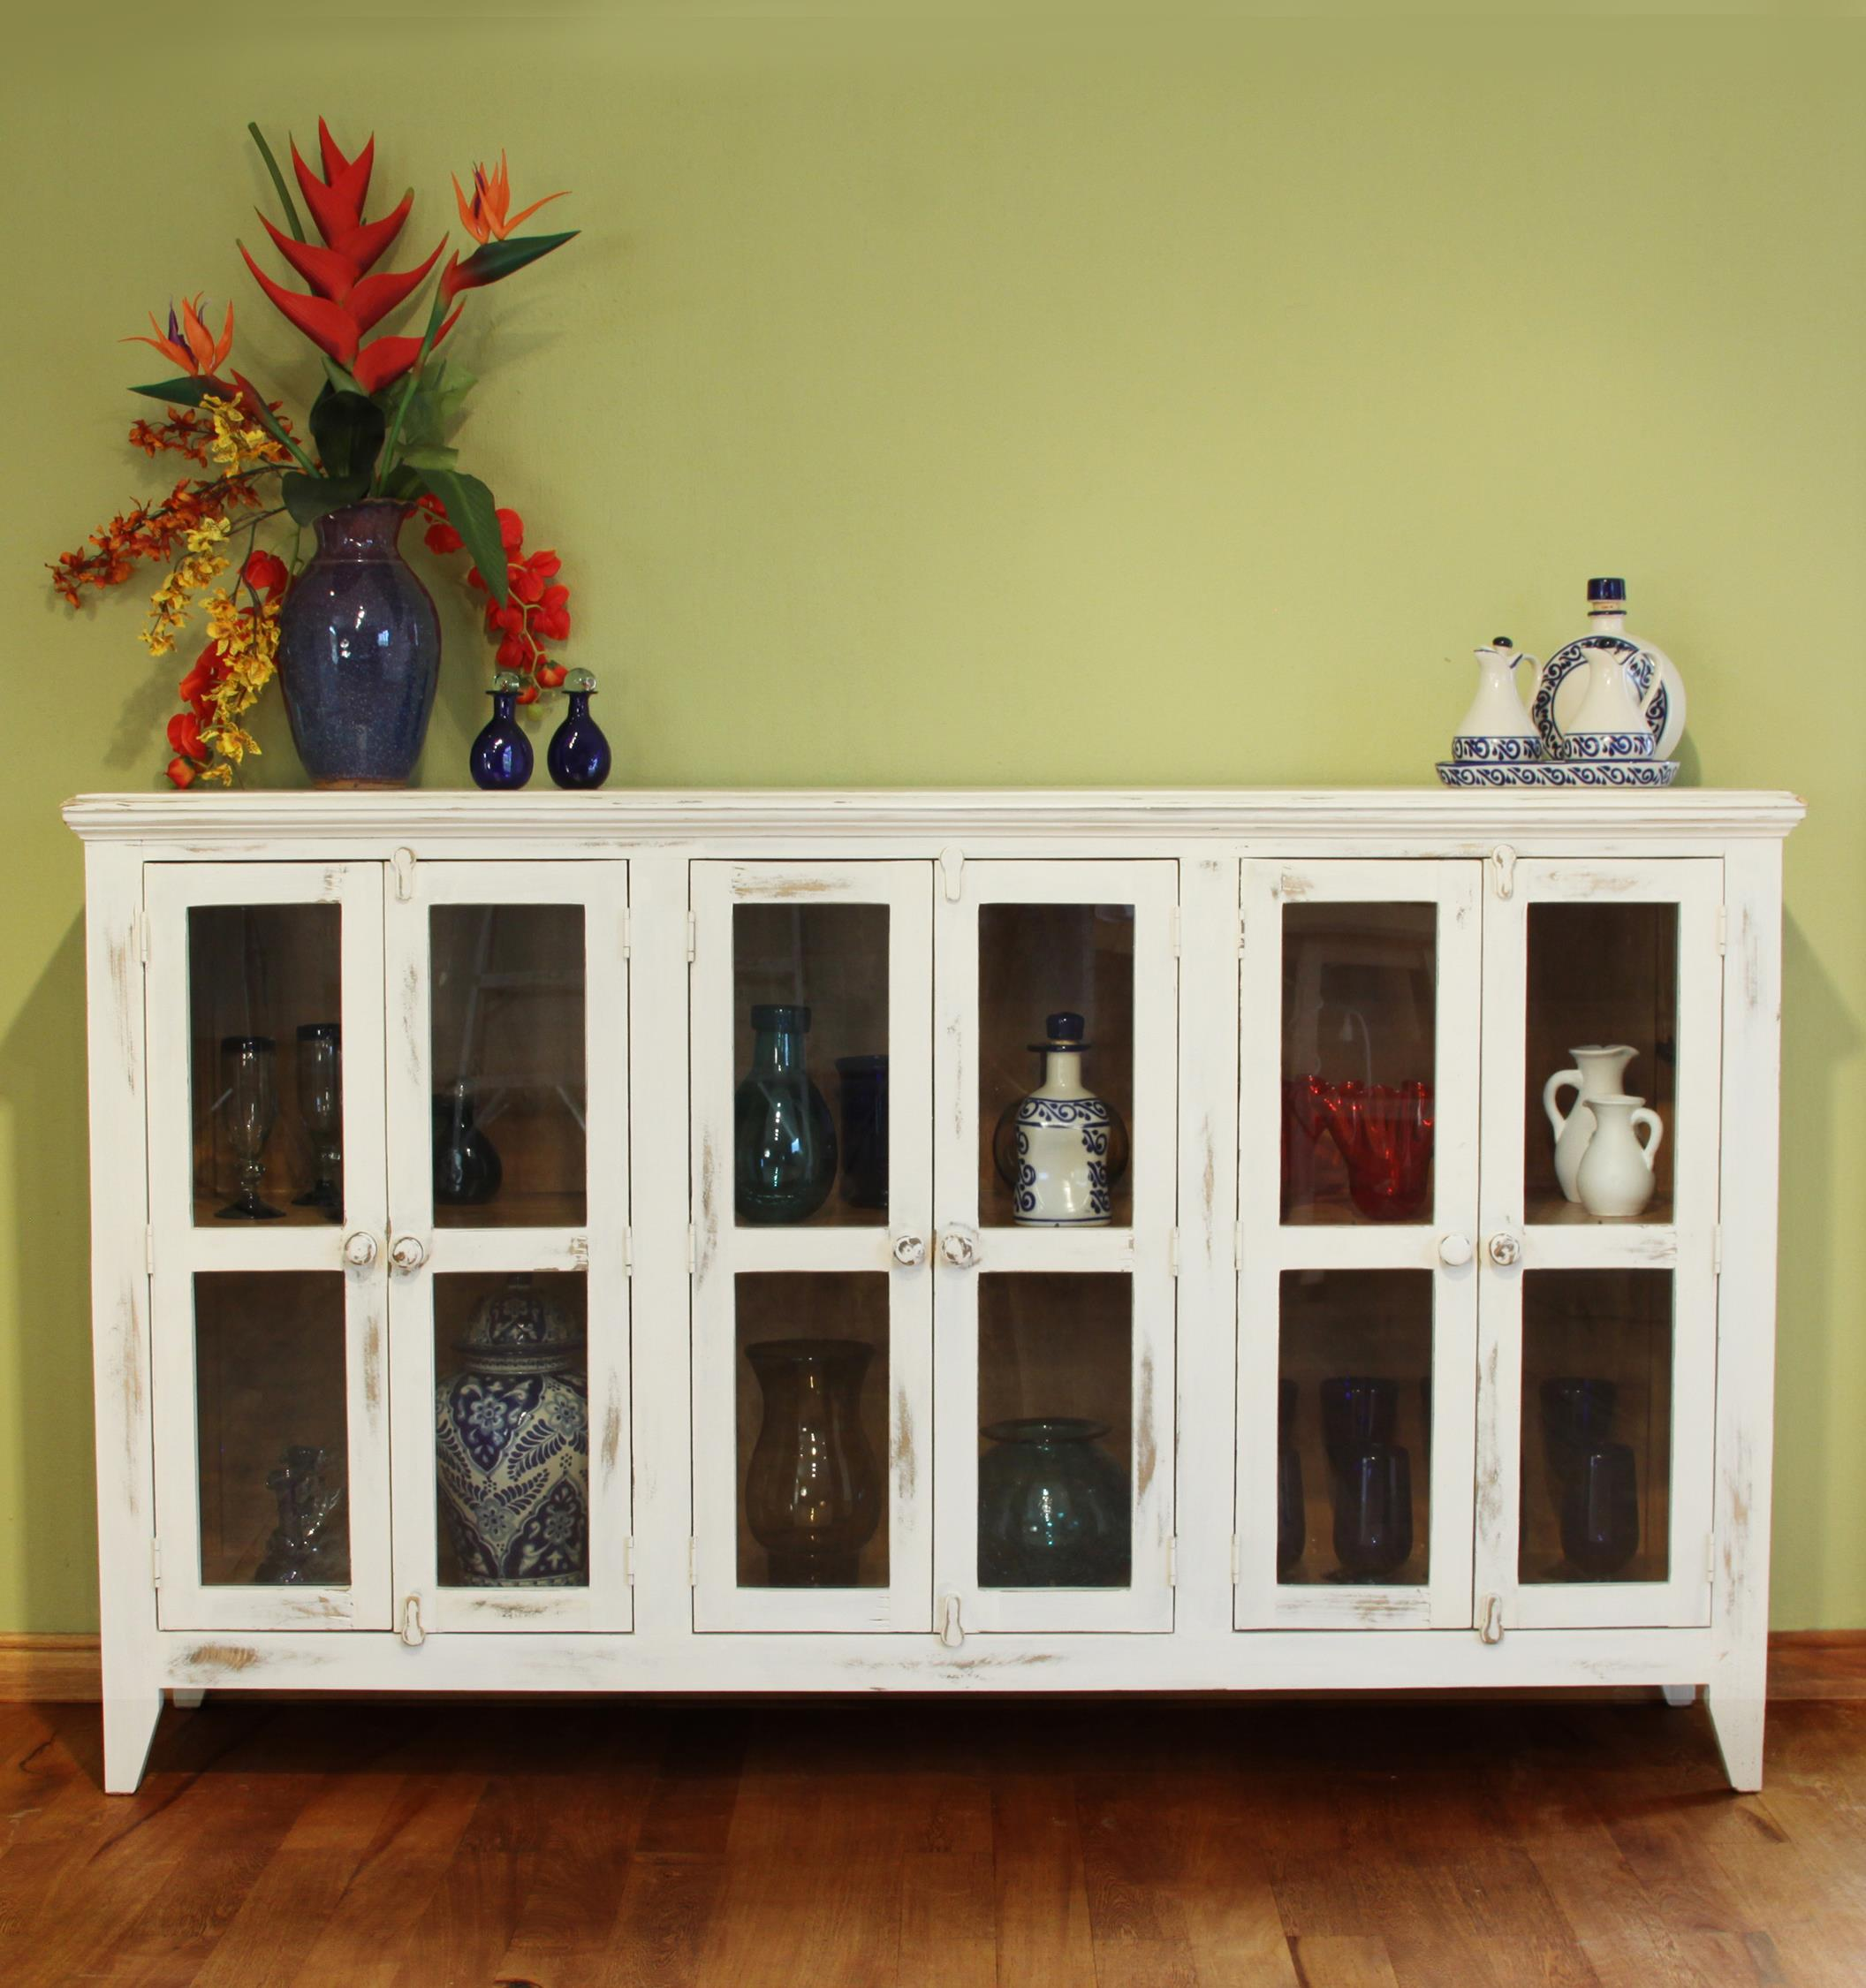 Groovy 900 Antique Console With 6 Doors By International Furniture Direct At Dunk Bright Furniture Home Interior And Landscaping Mentranervesignezvosmurscom